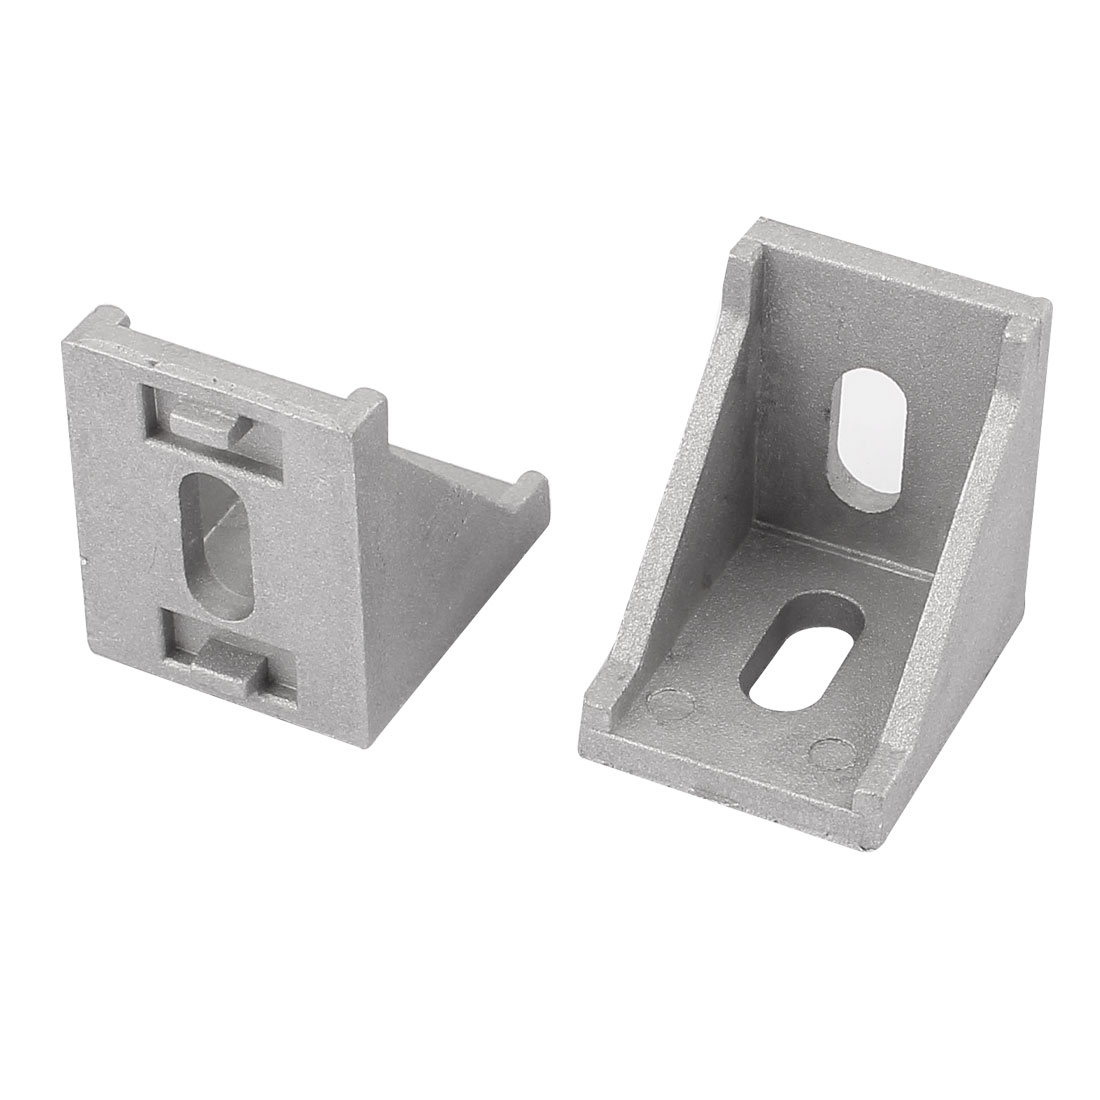 2 Pcs Silver Tone Metal 90 Degree Door Angle Bracket 30mm x 30mm